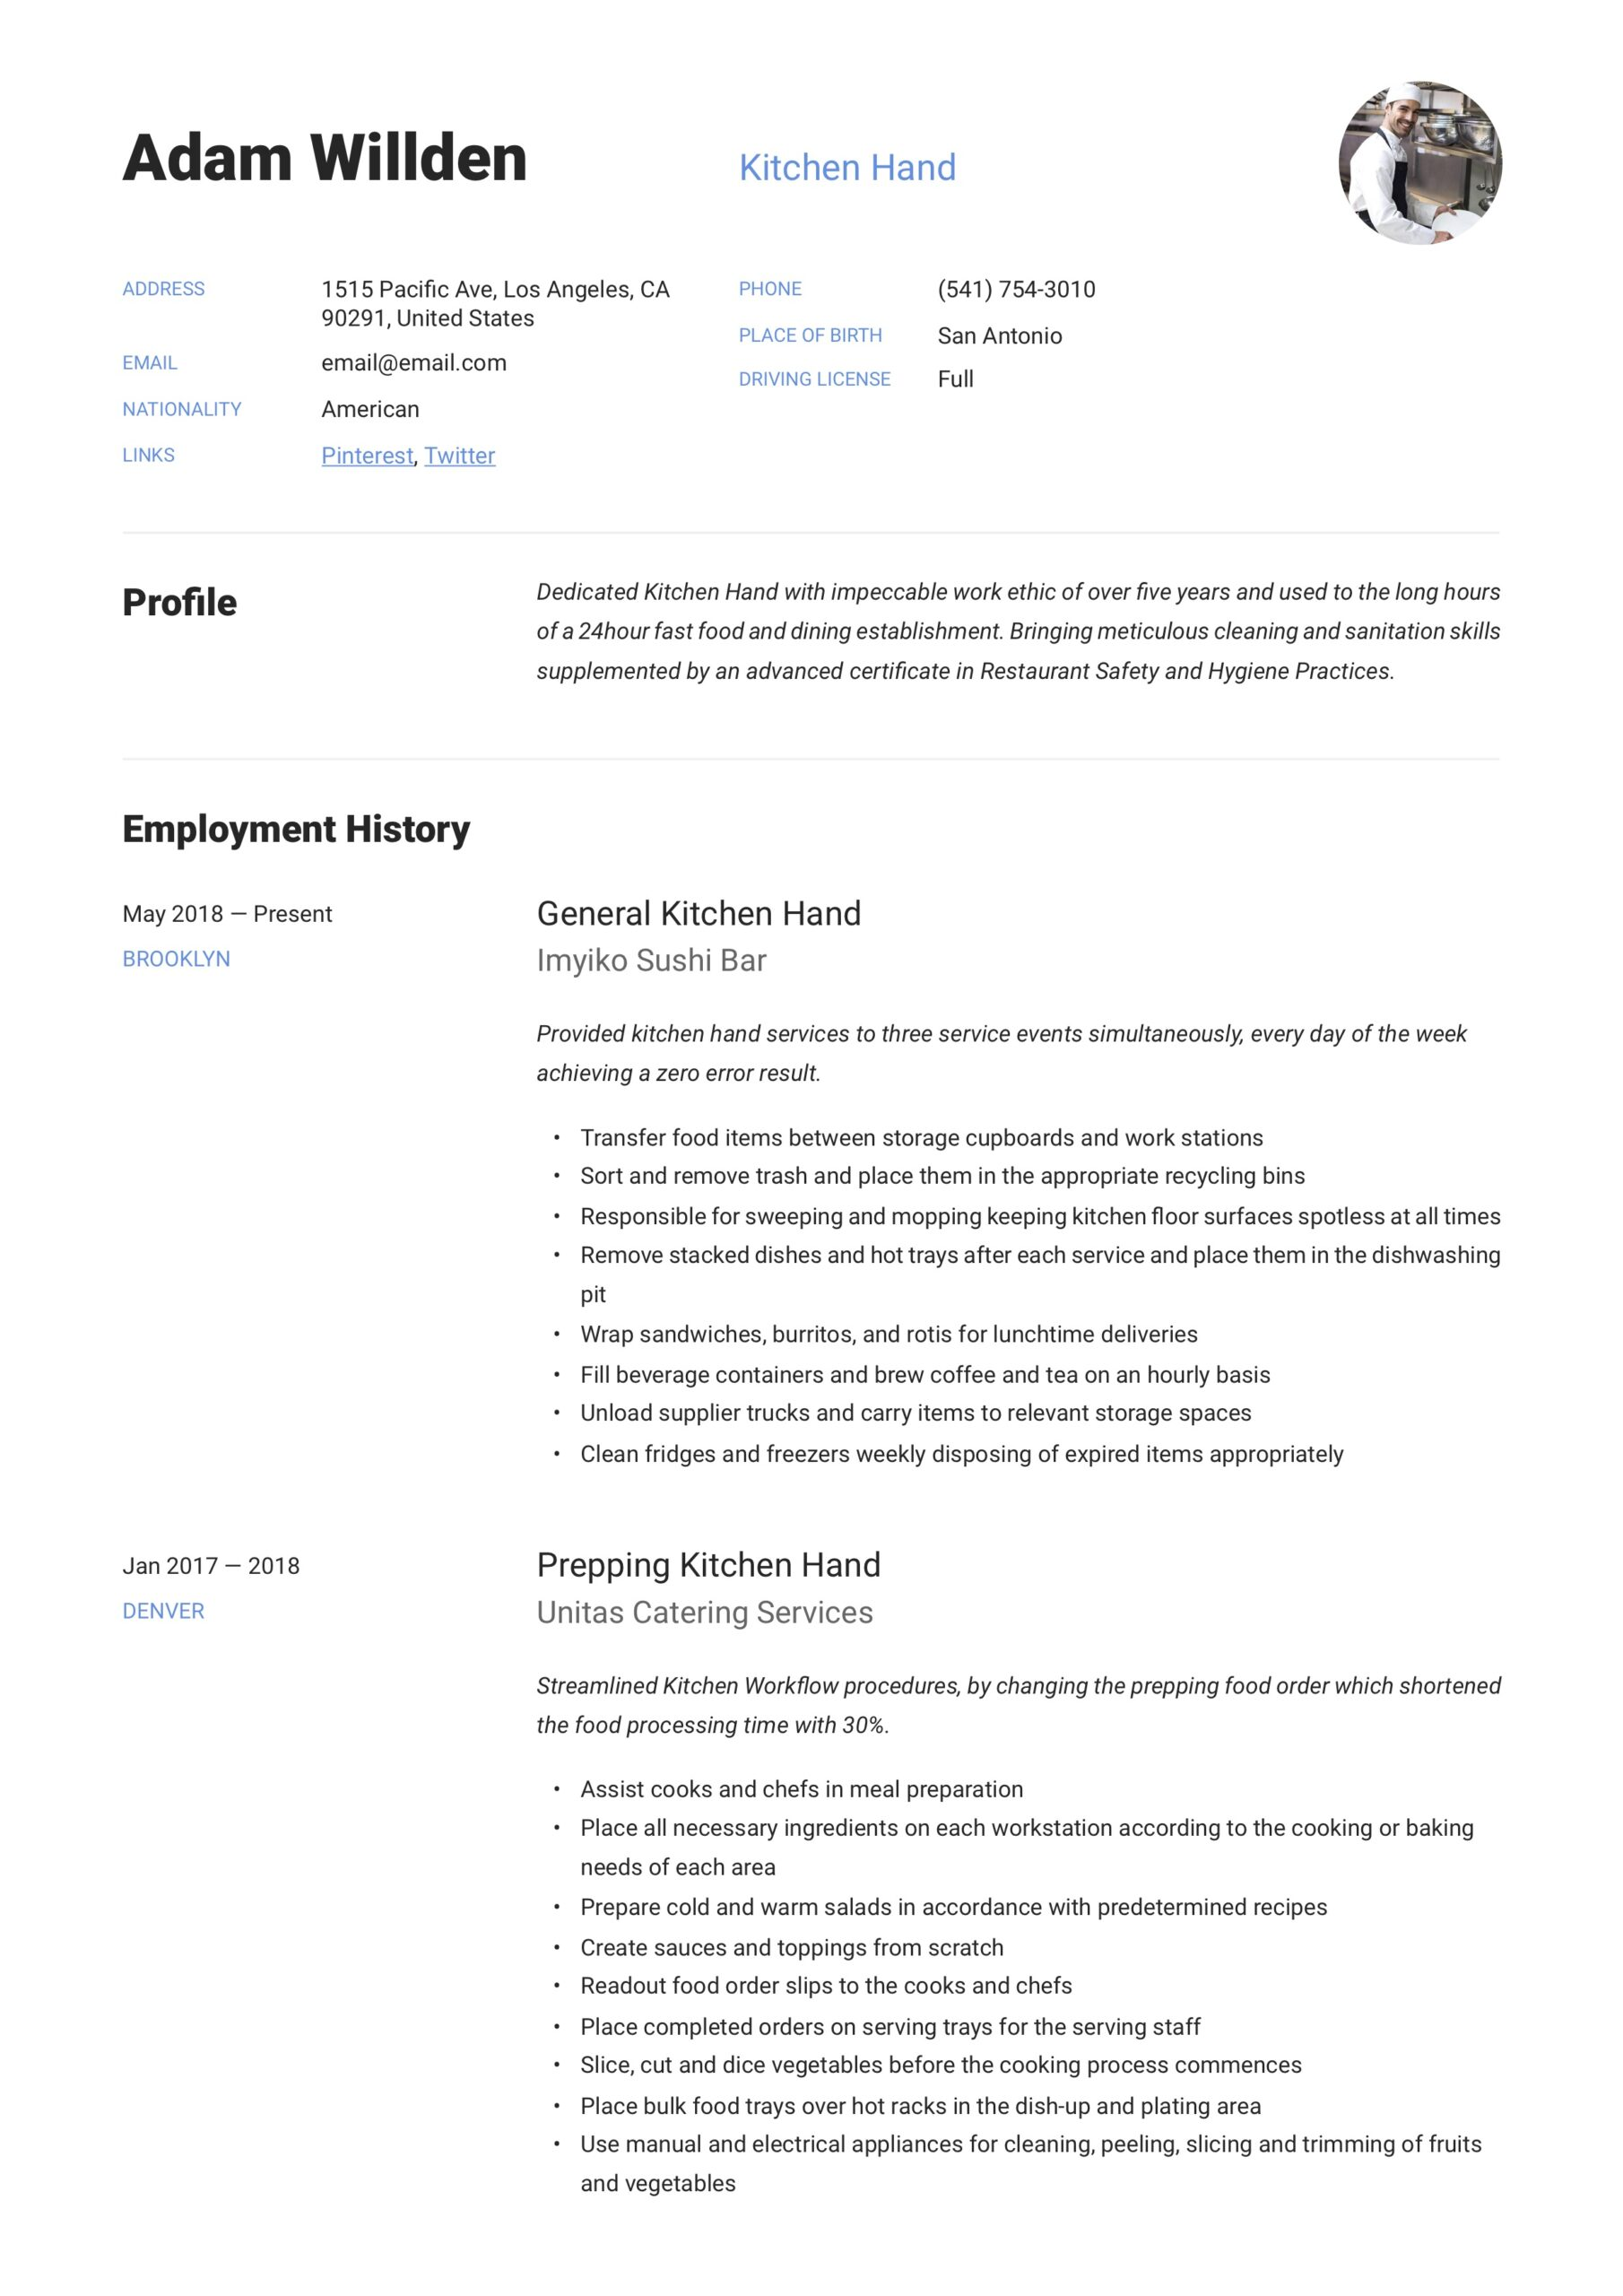 kitchen resume writing guide free templates responsibilities good reasons for leaving job Resume Kitchen Hand Responsibilities Resume